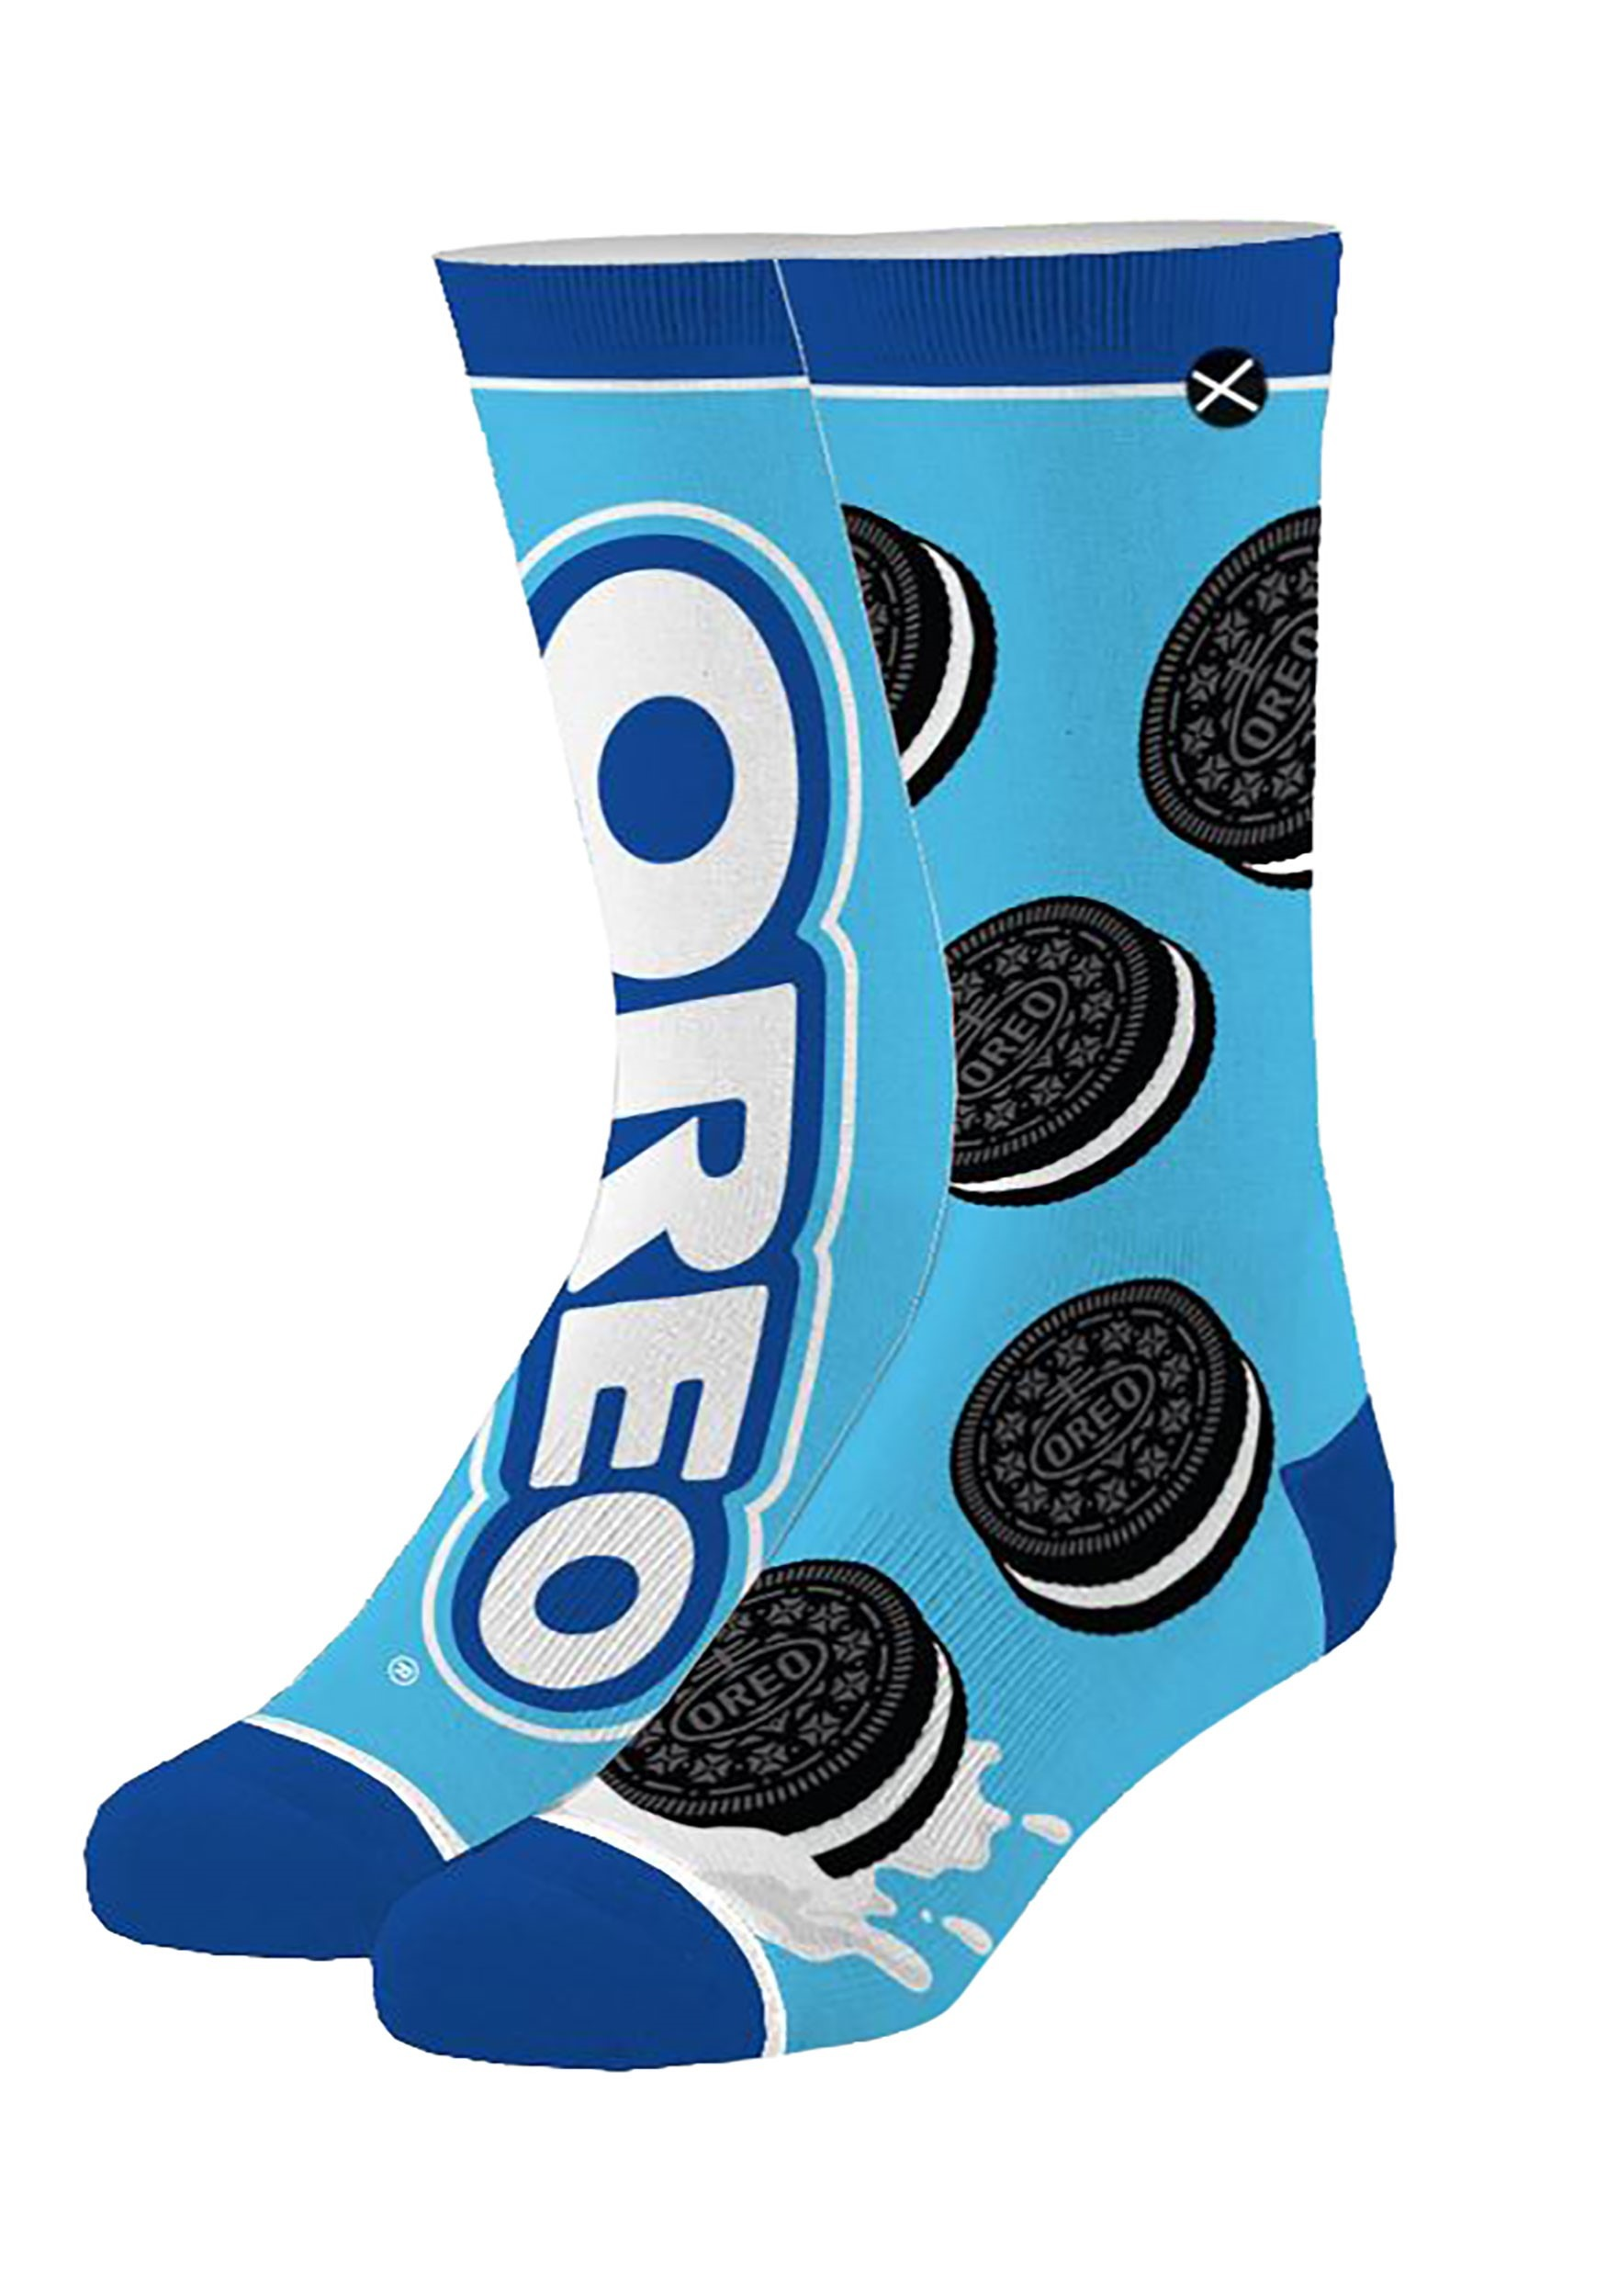 Oreo Knit Crew Socks for Adults